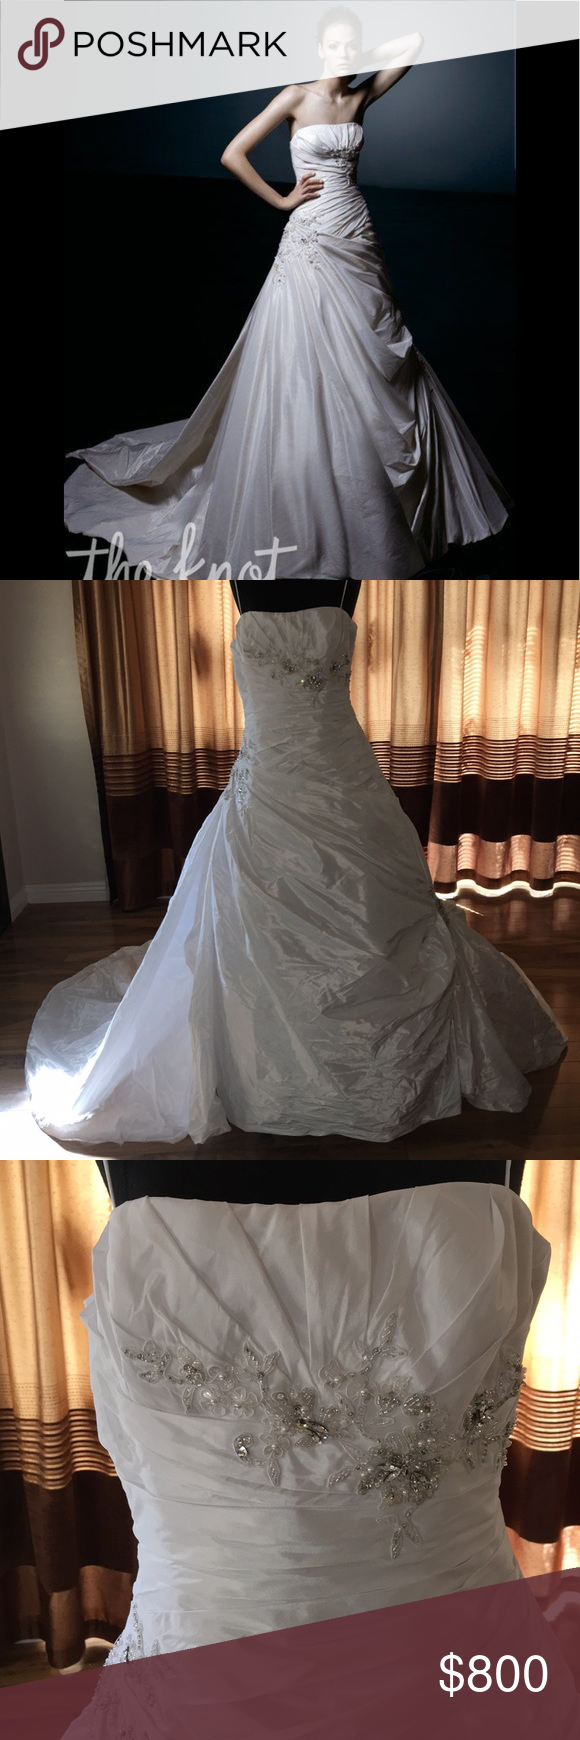 How Much Does Dry Cleaning Cost For A Wedding Dress Fresh Wedding Gown Price Awesome Dress A Line In 2020 Wedding Dress Cost Elegant Wedding Gowns Modern Wedding Dress